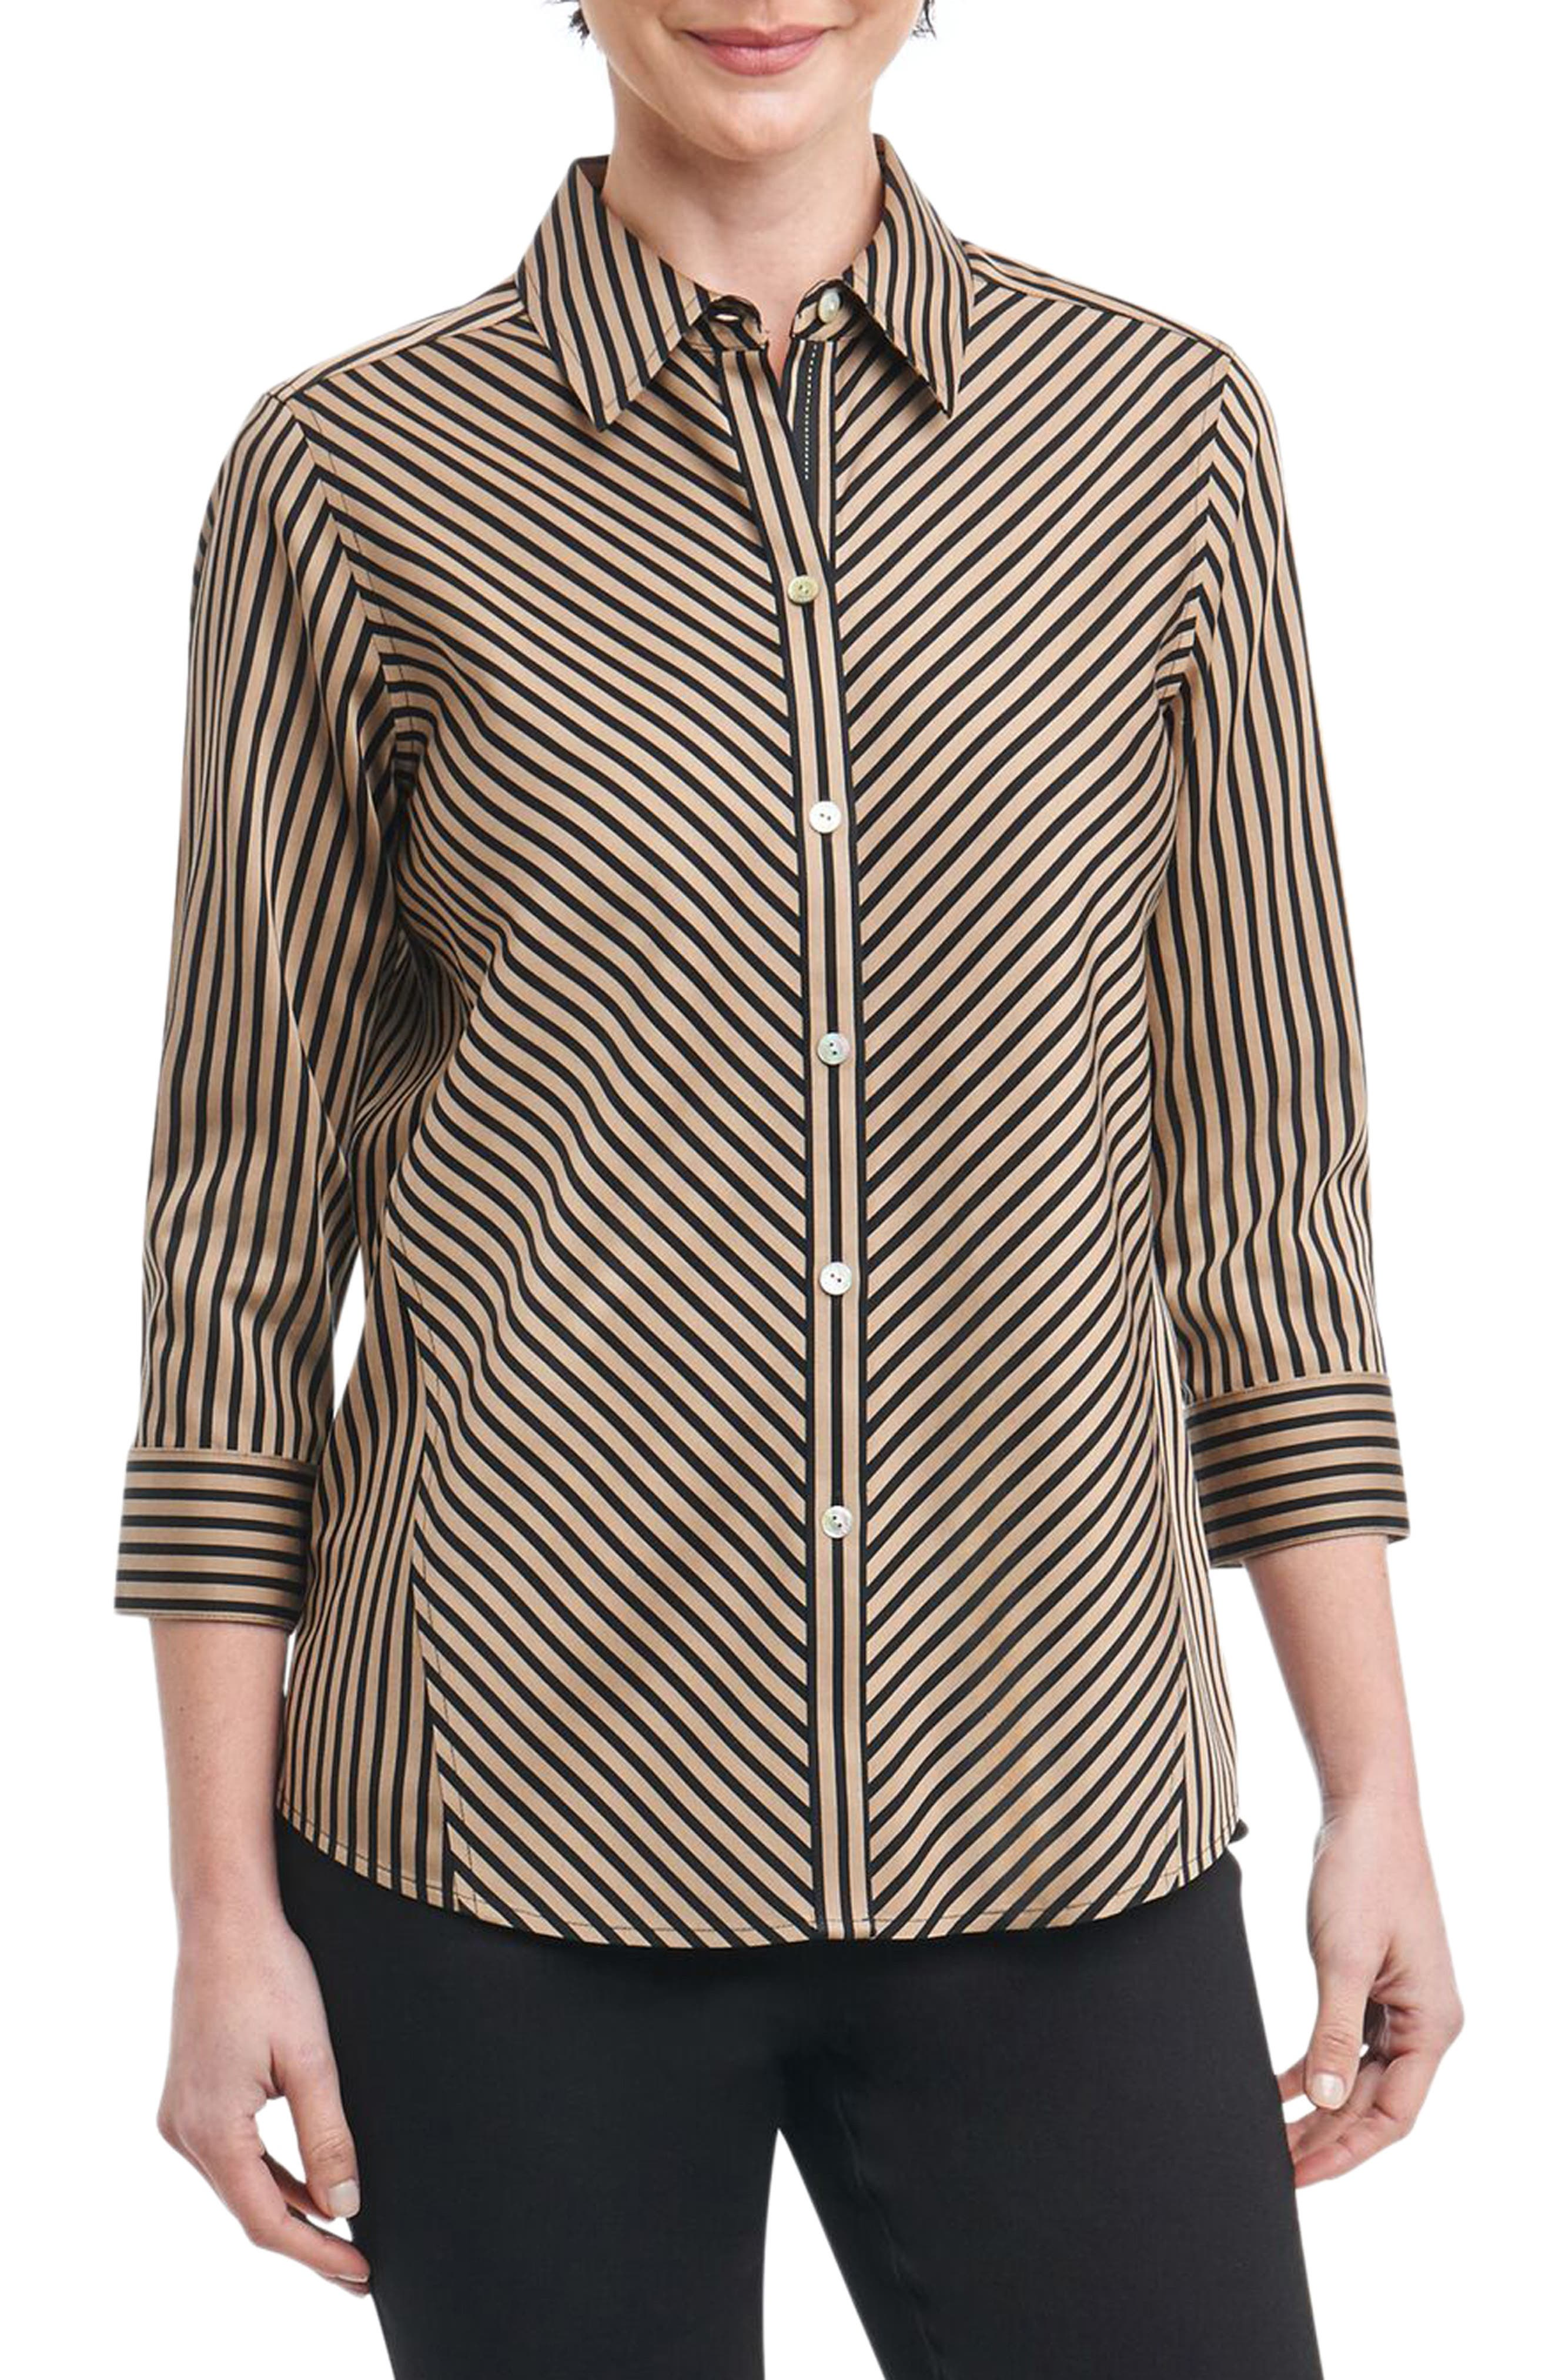 Foxcroft Fallon Satin Stripe Cotton Shirt (Regular & Petite)